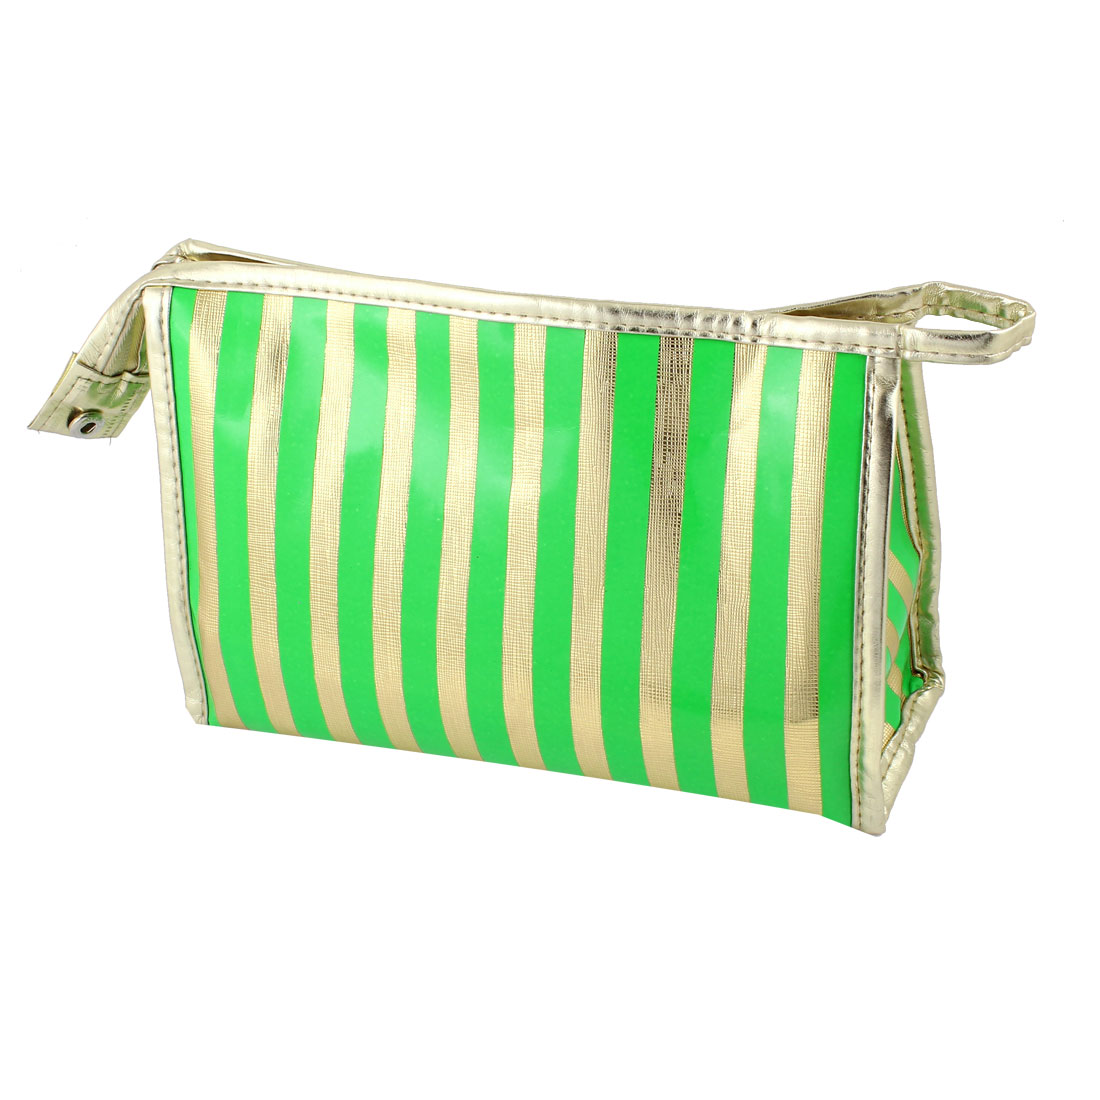 Women Nylon Lining Stripes Pattern Waterproof Cosmetic Bag Green Gold Tone